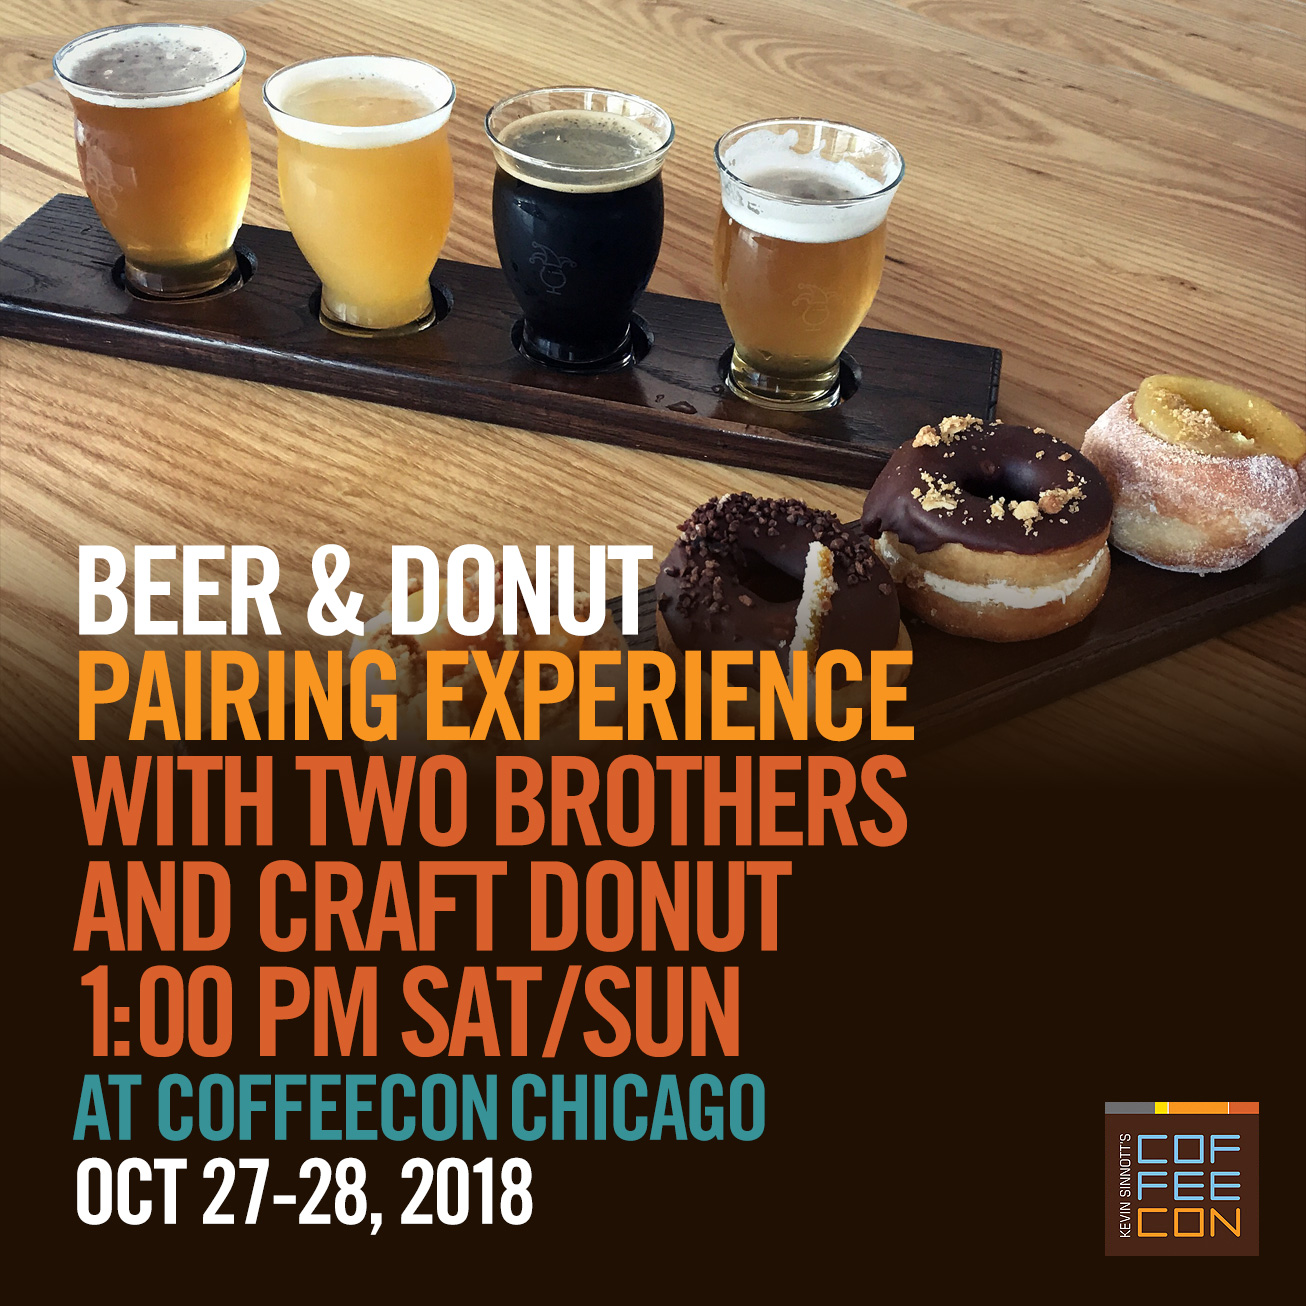 Beer and Donut Pairing at CoffeeConChicago 2018